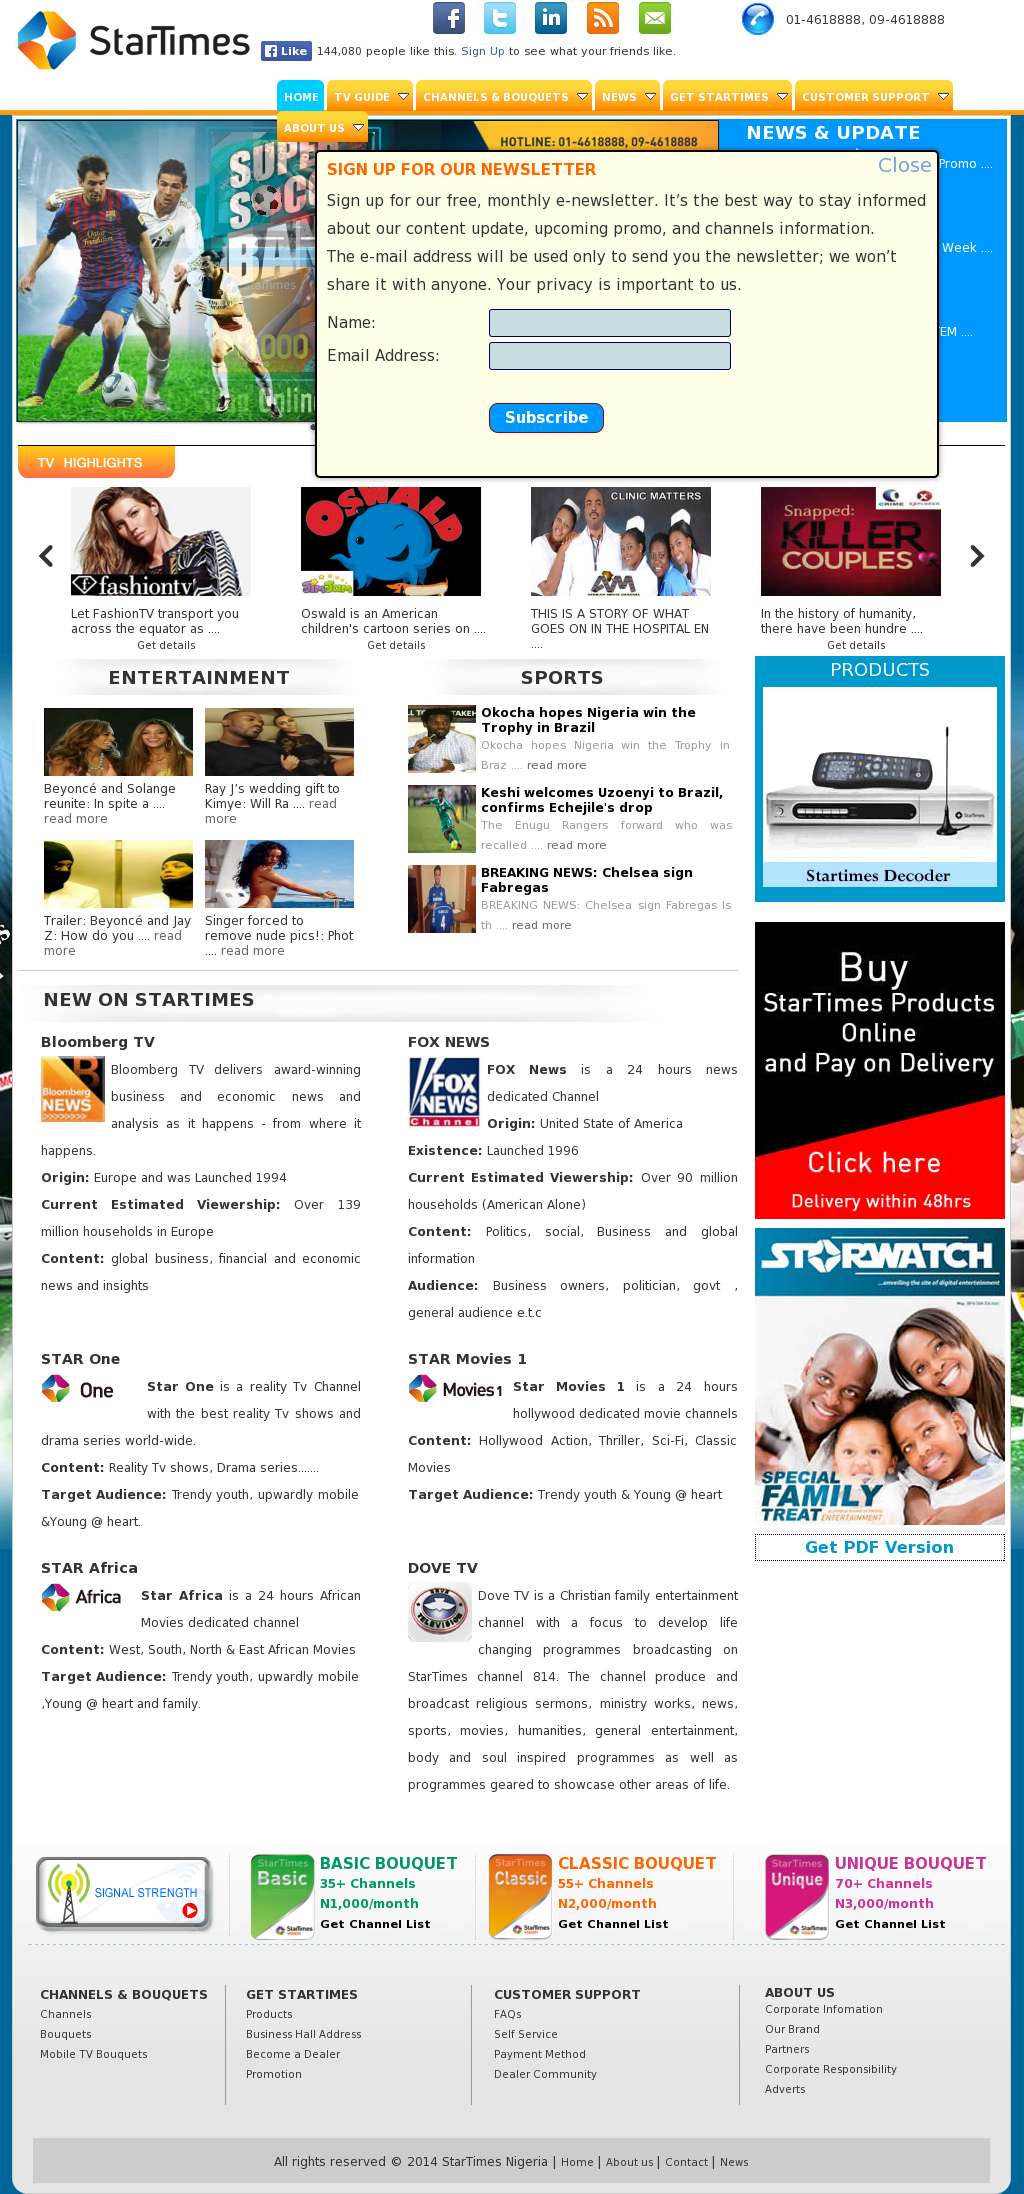 StarTimes Competitors, Revenue and Employees - Owler Company